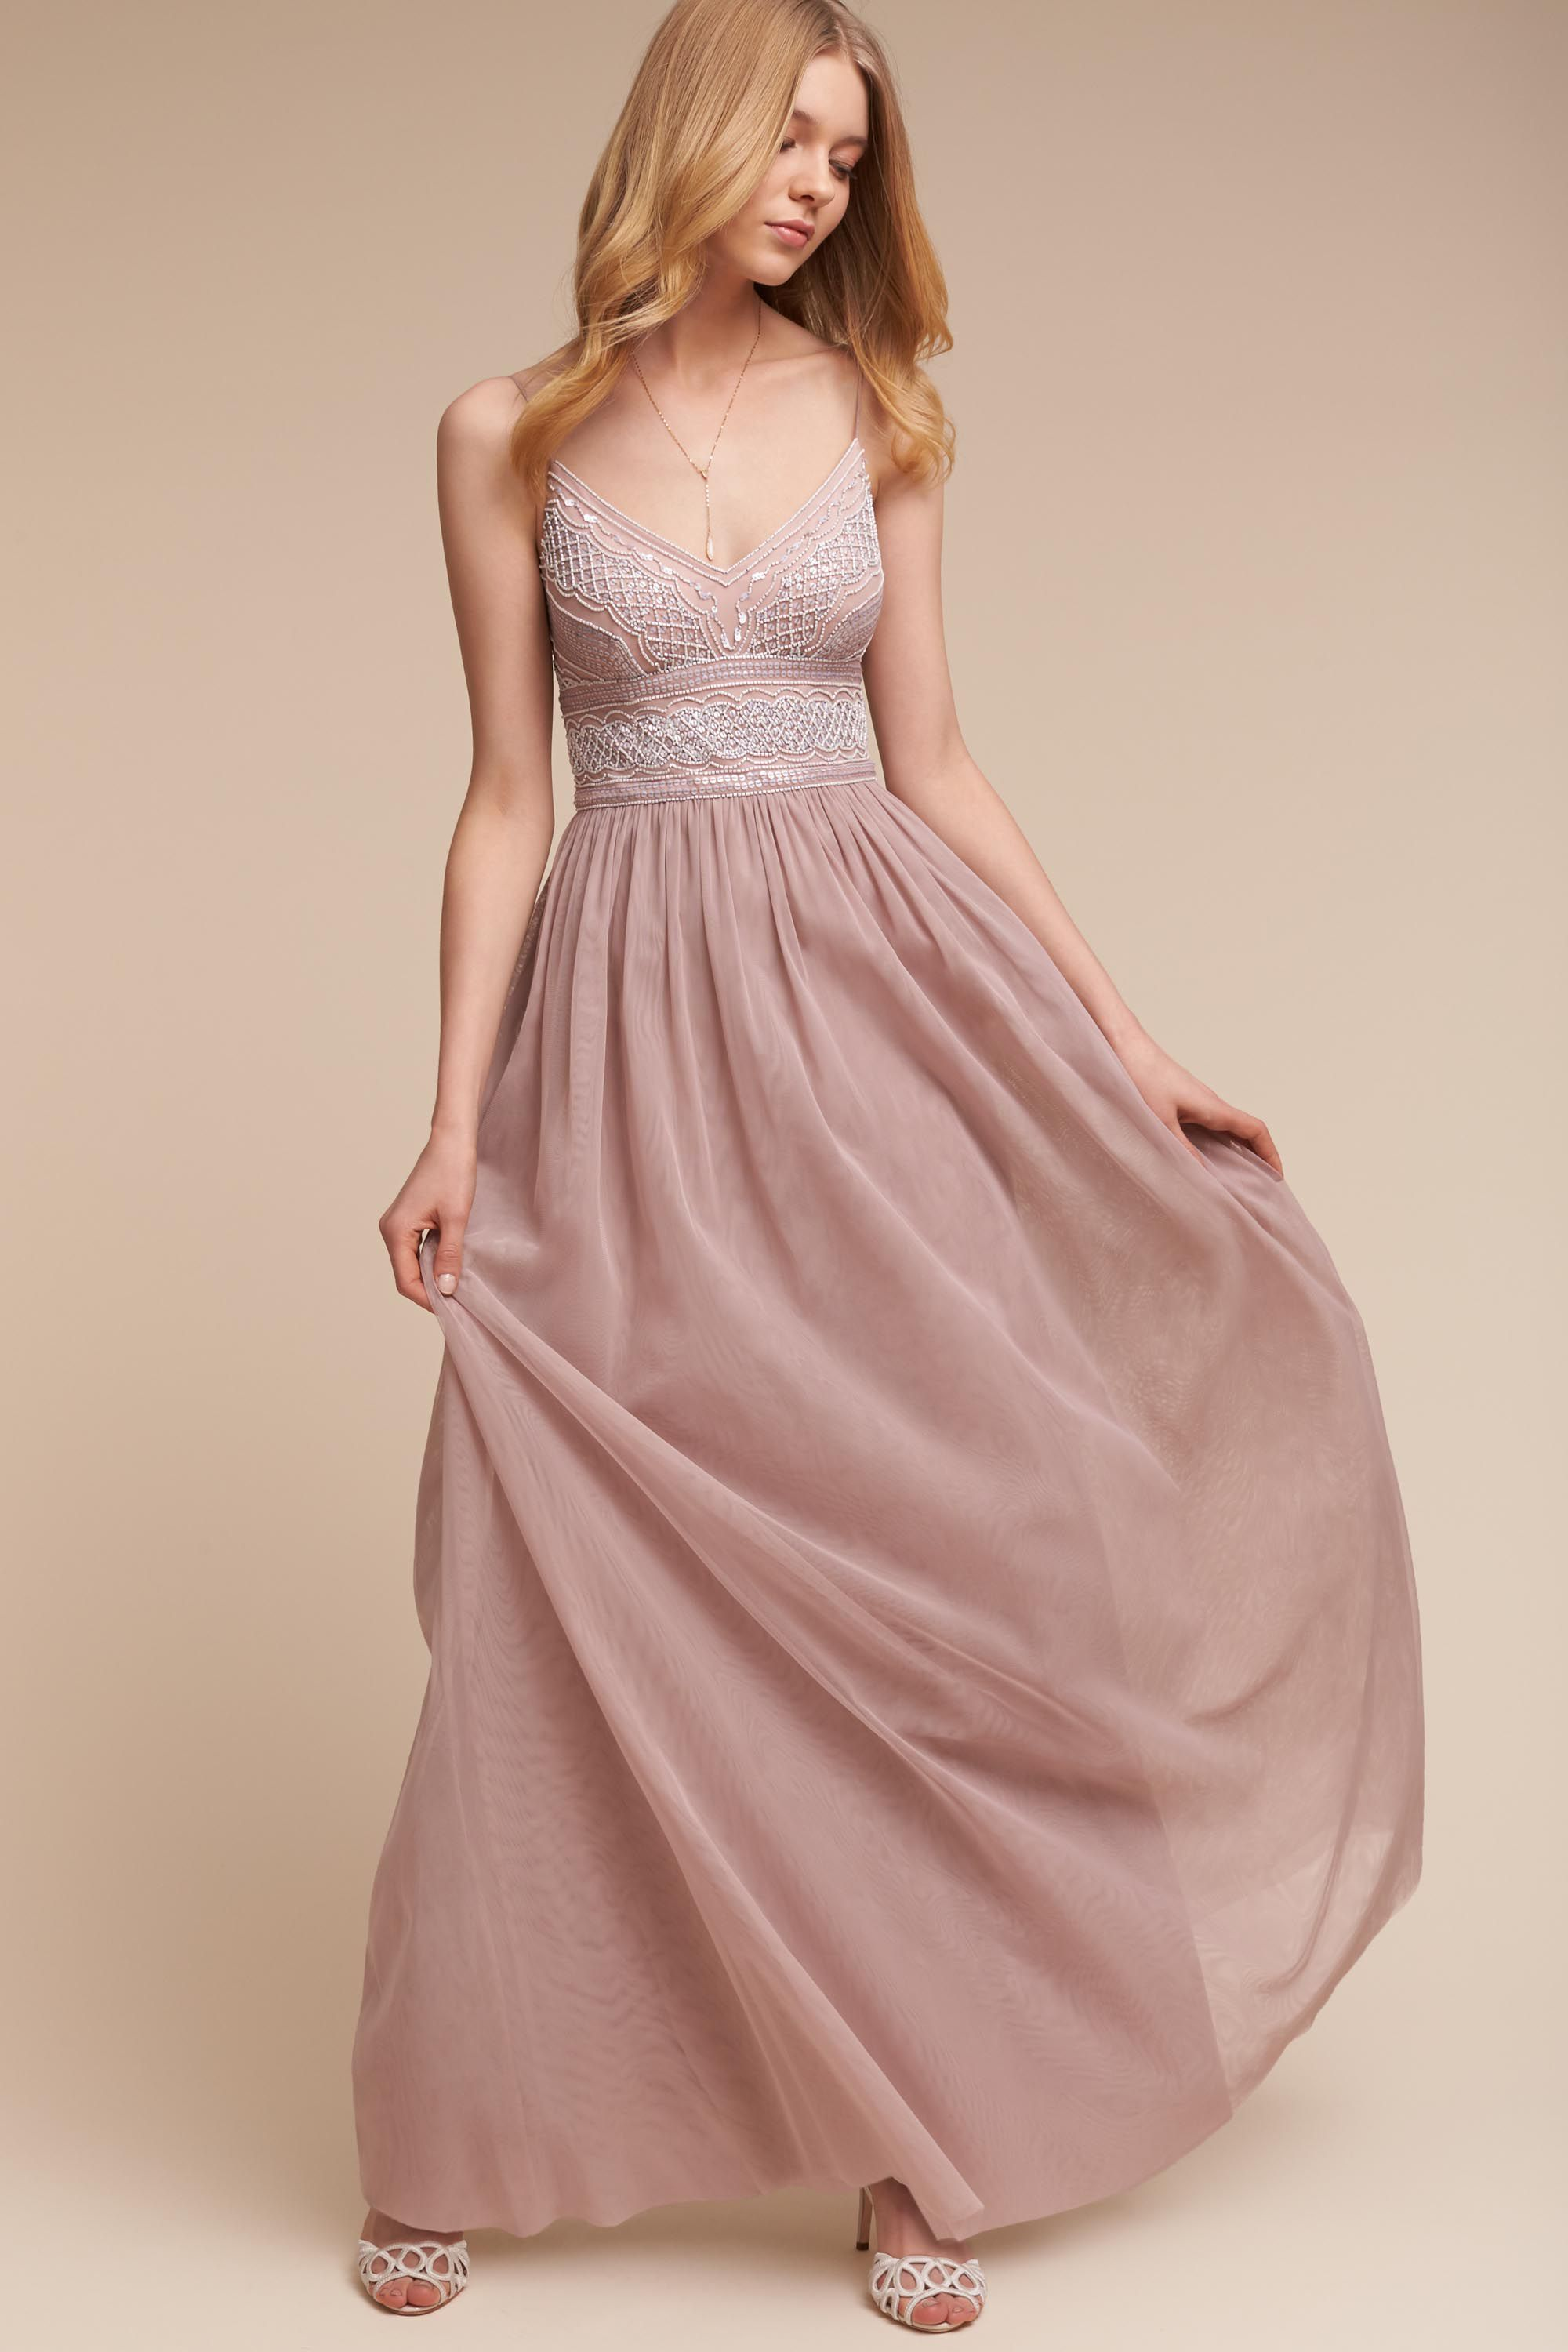 BHLDN Aida Dress in New | BHLDN | Styles of Vintage Rose ...